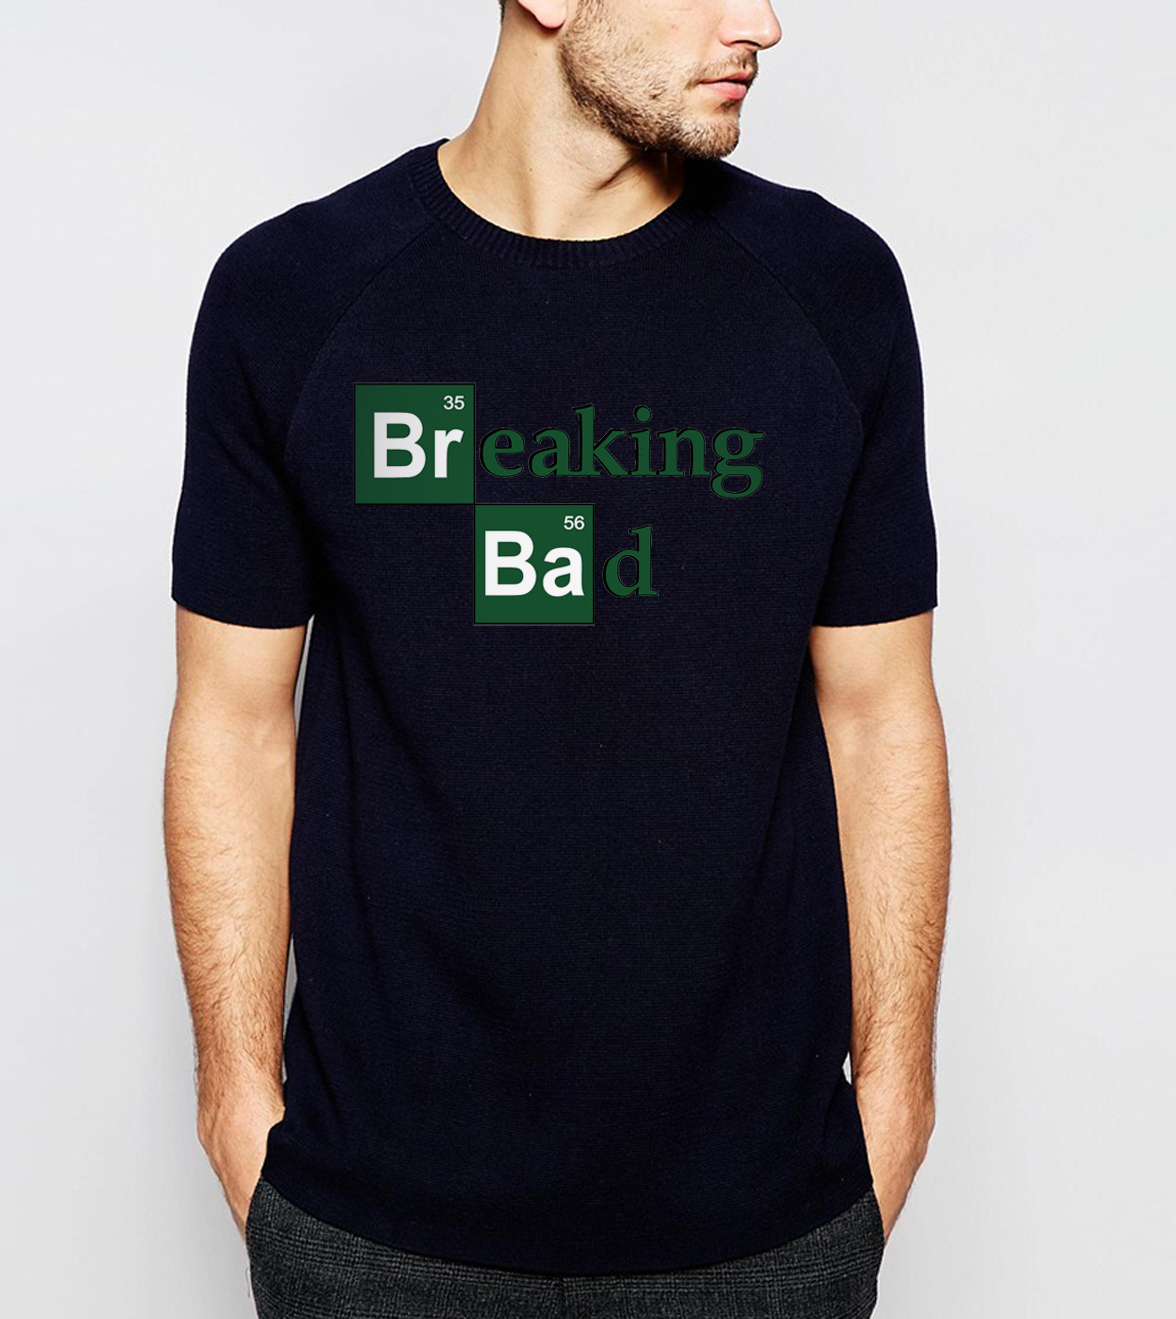 ALI shop ...  ... 32791089165 ... 2 ... Hot Sale Breaking Bad Heisenberg Men T Shirts 2019 Summer Fashion Casual 100% Cotton  T-Shirt Streetwear Slim Fit Top Tees S-3XL ...